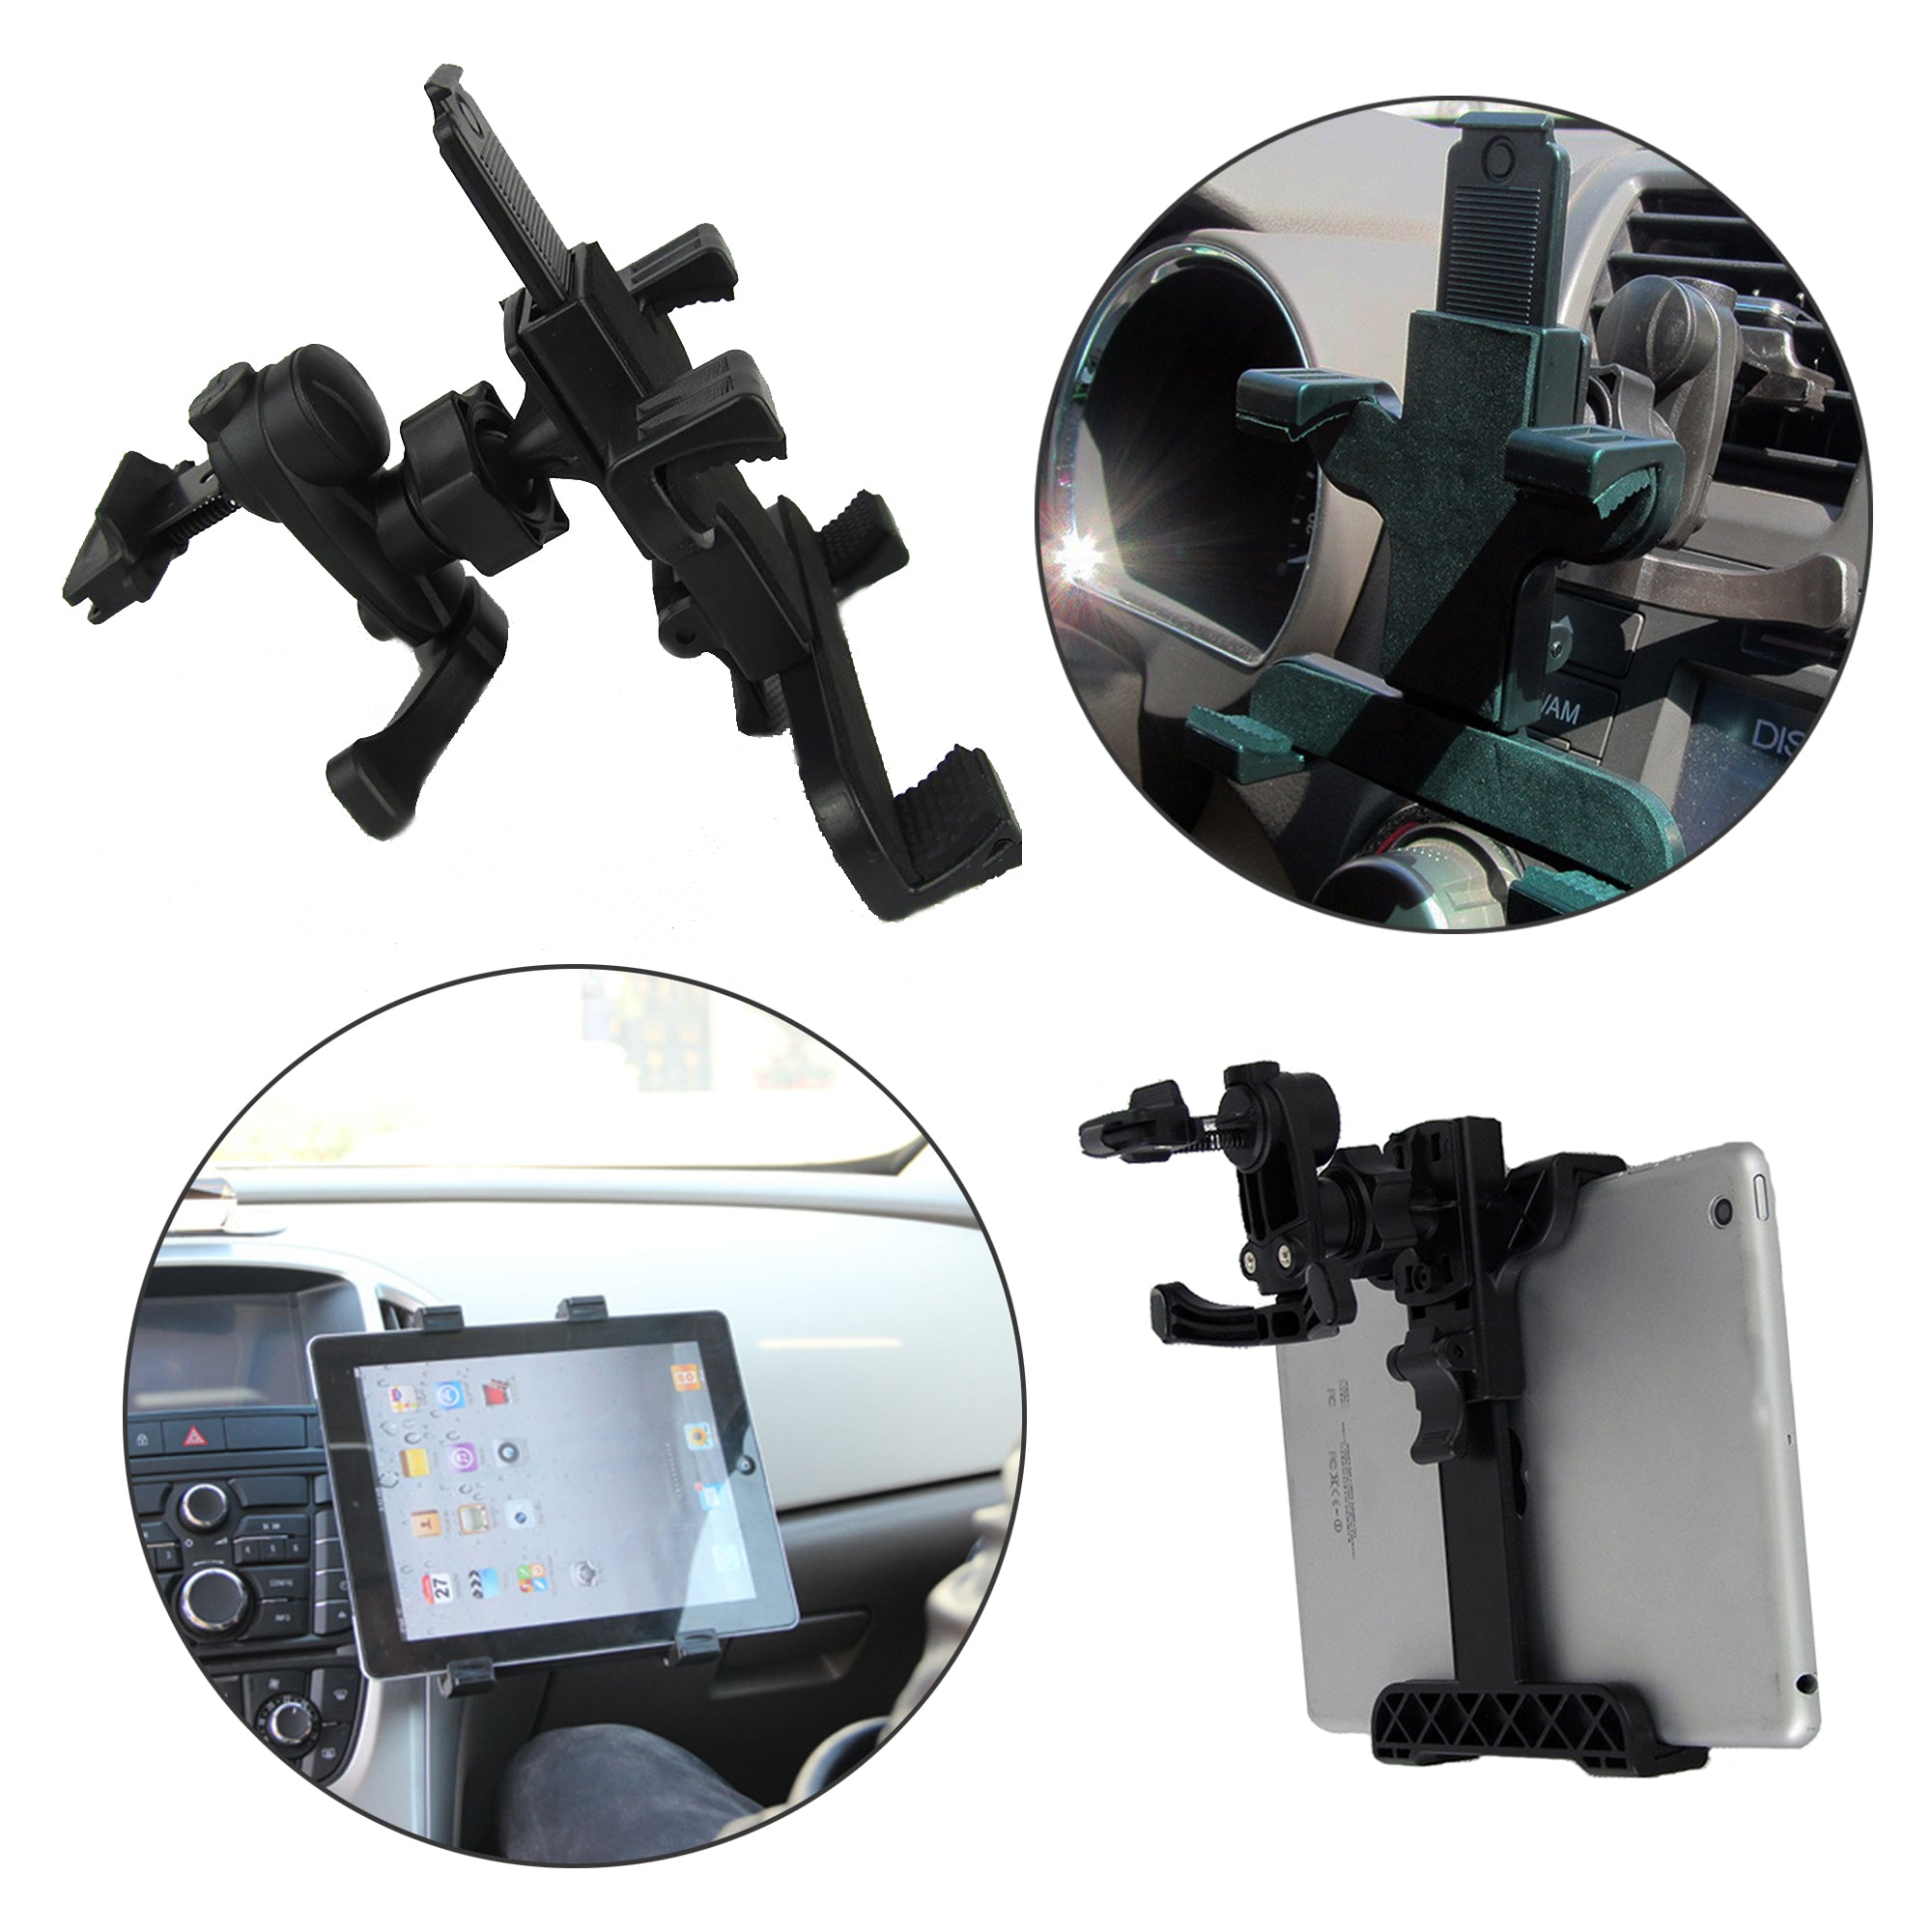 Instrument Microphone Stand Universal Mount Holder for Tablet G Pad Nook Nexus